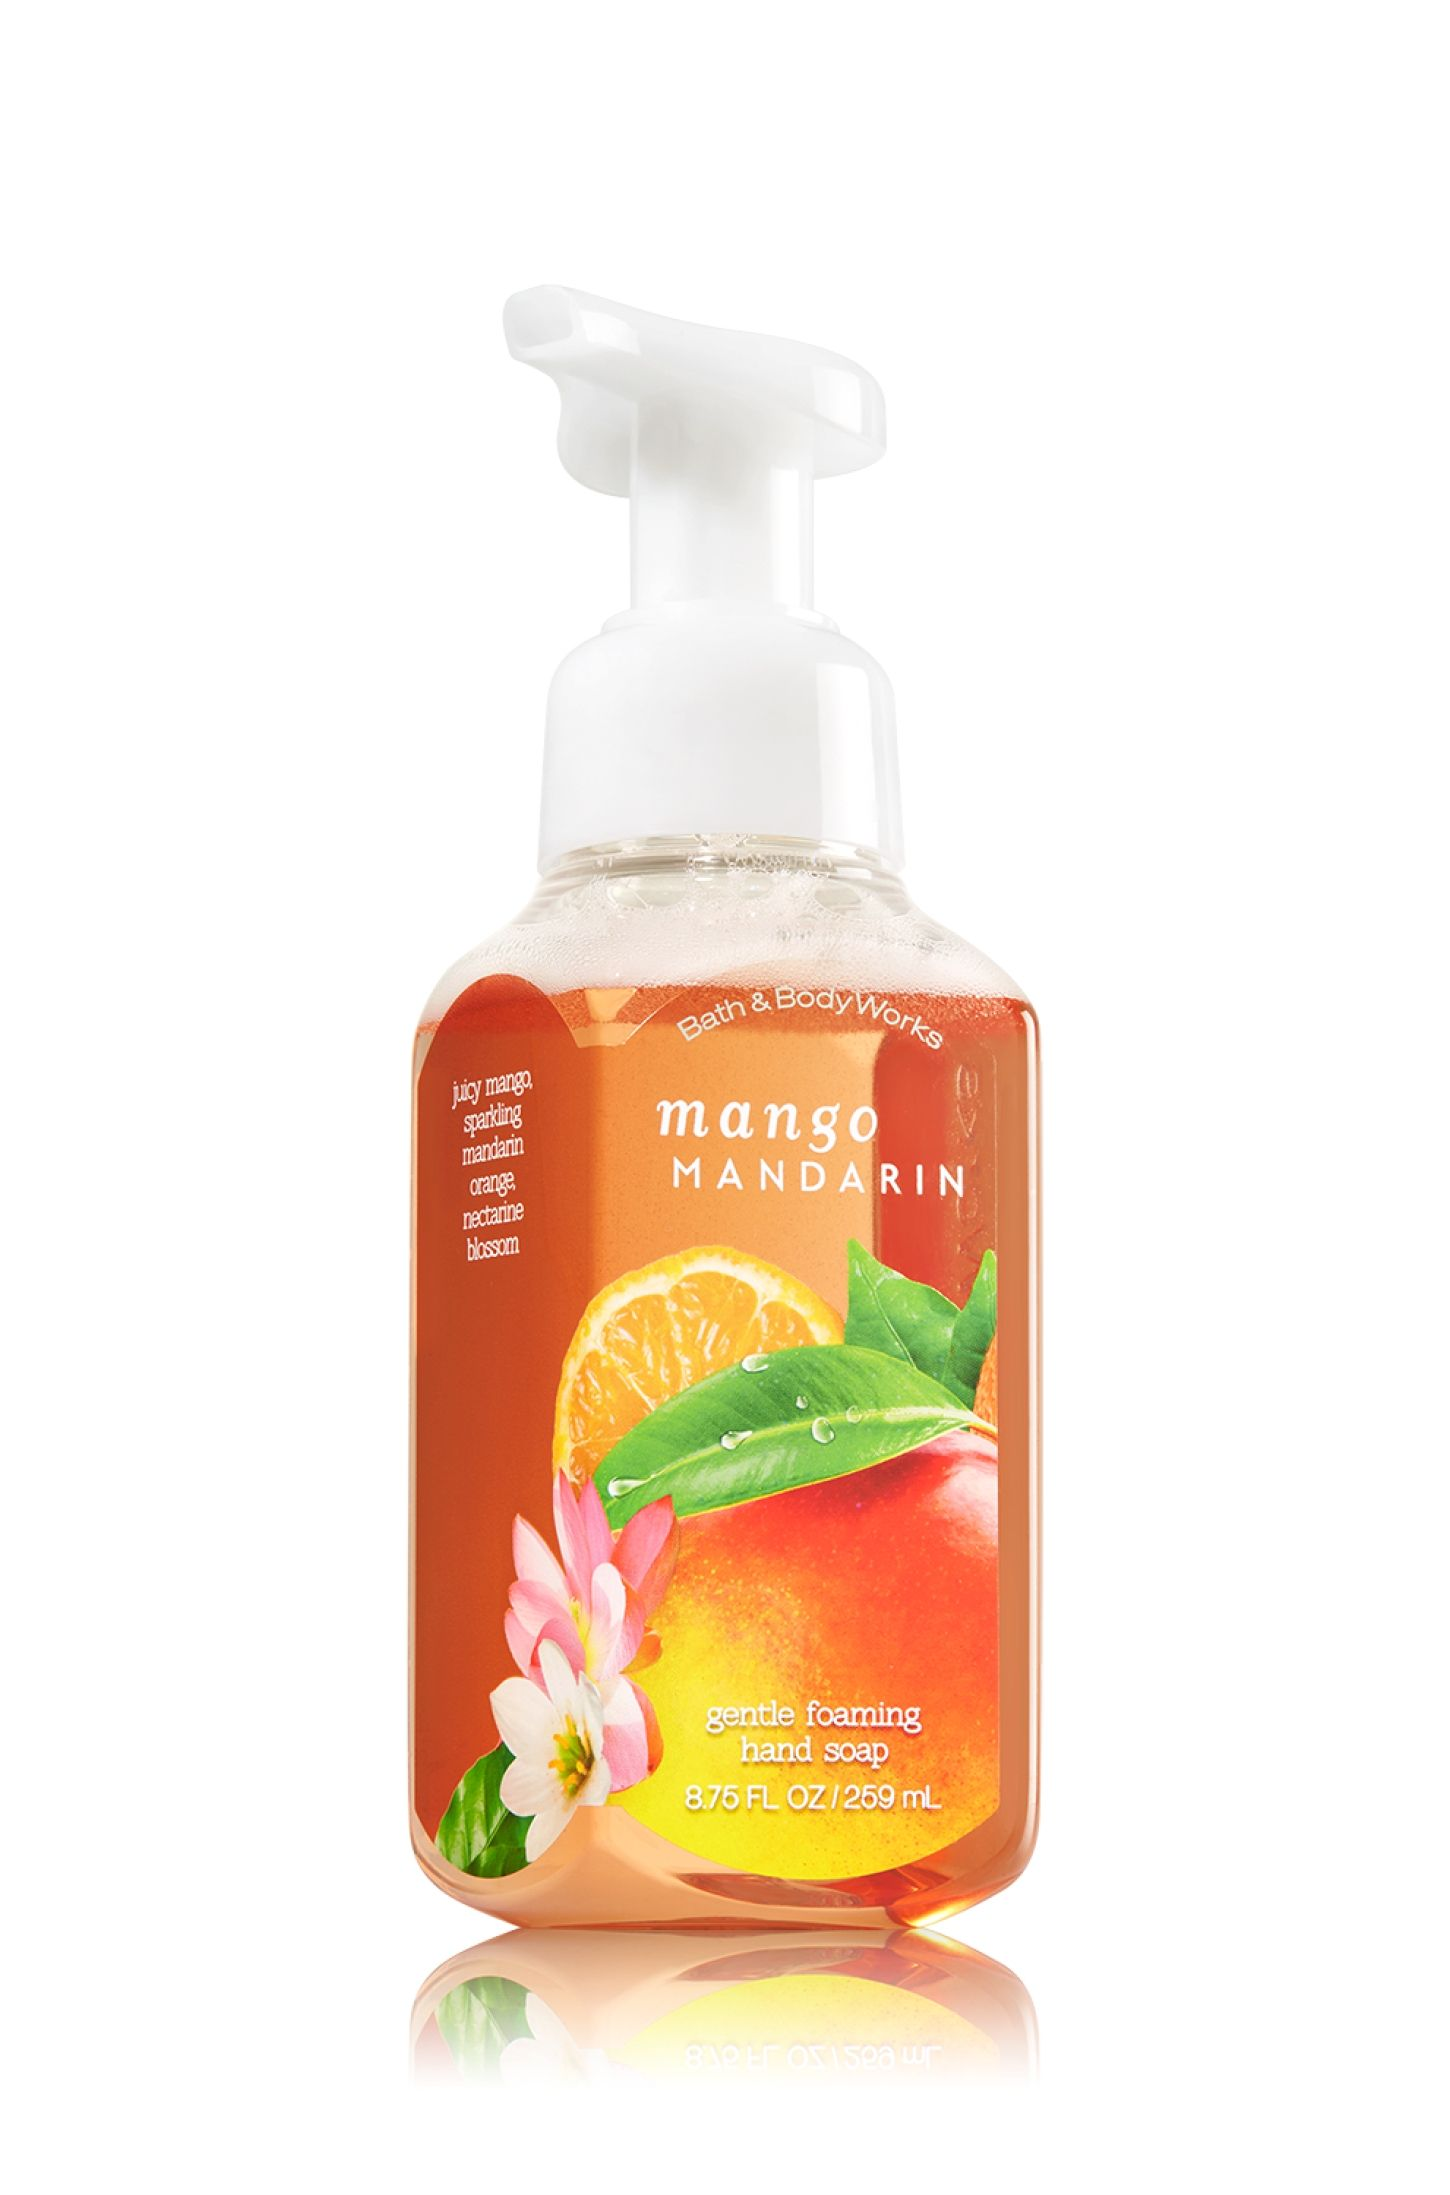 Mango Mandarin Gentle Foaming Hand Soap Soap Sanitizer Bath